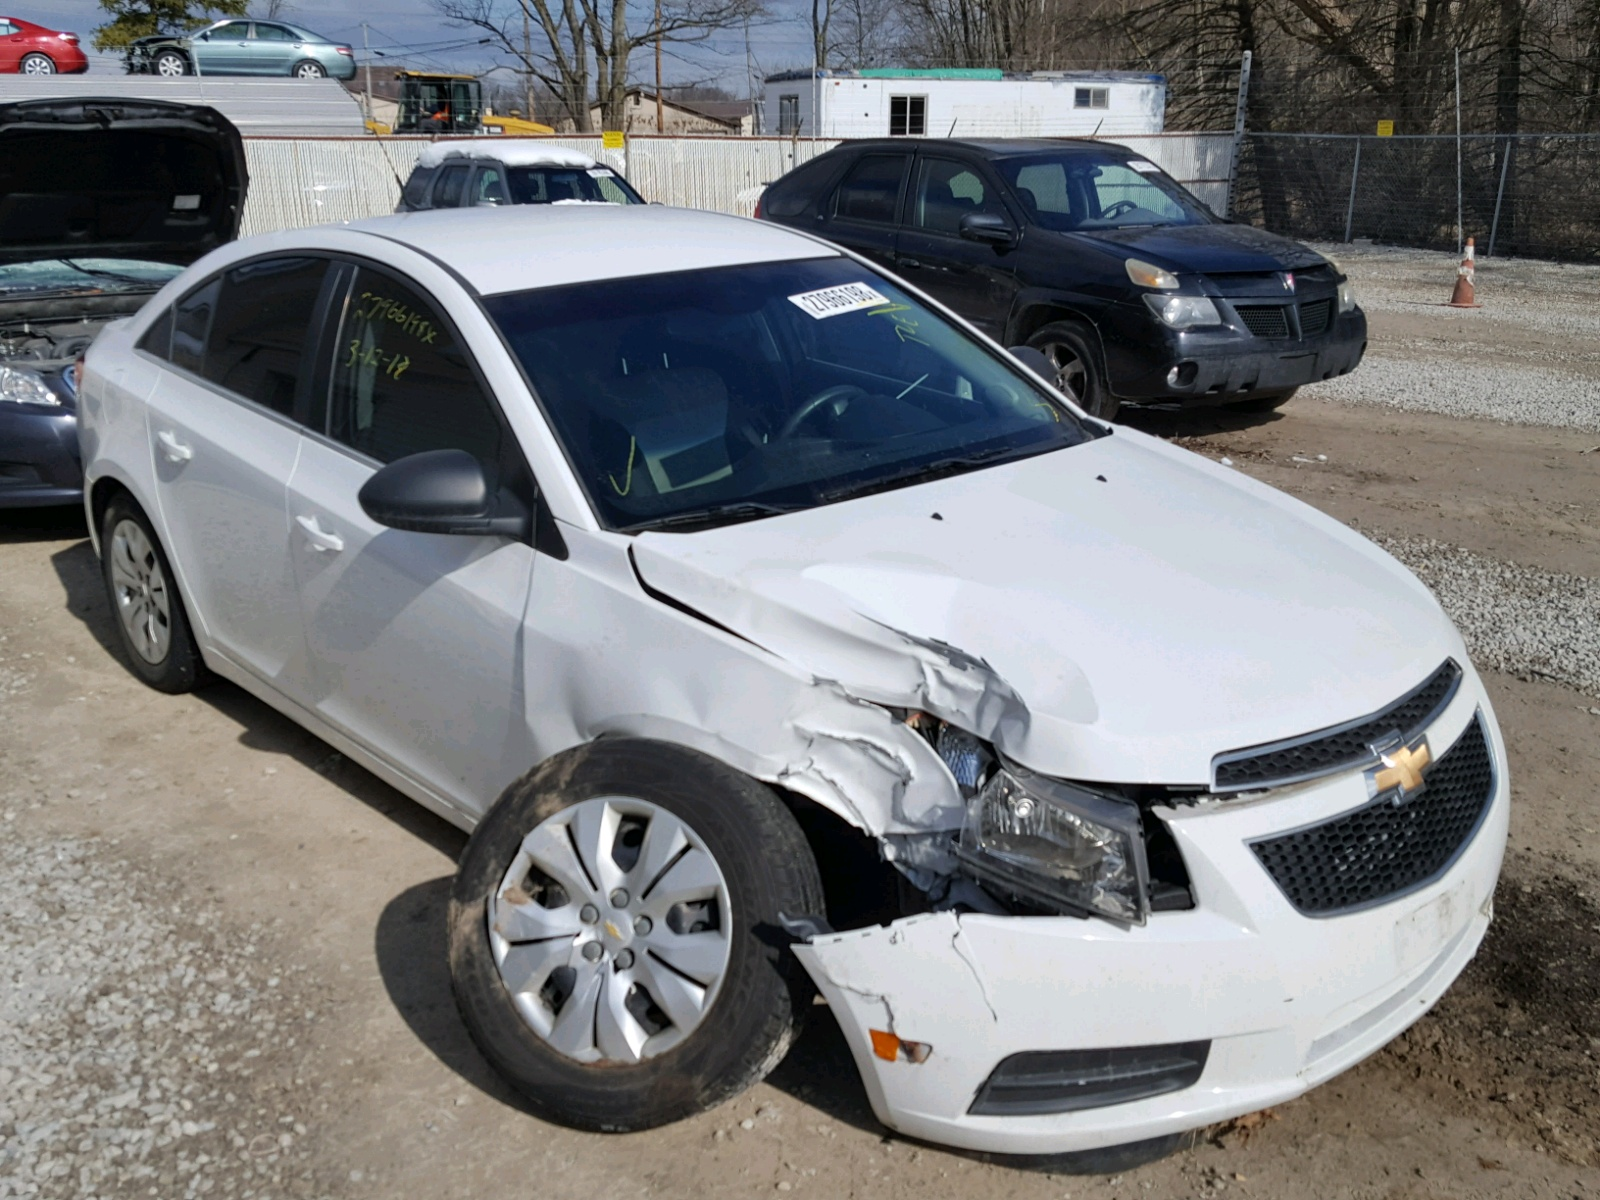 vehicles in peckville vehicle chevrolet cruze pa new vehiclesearchresults photo for sale